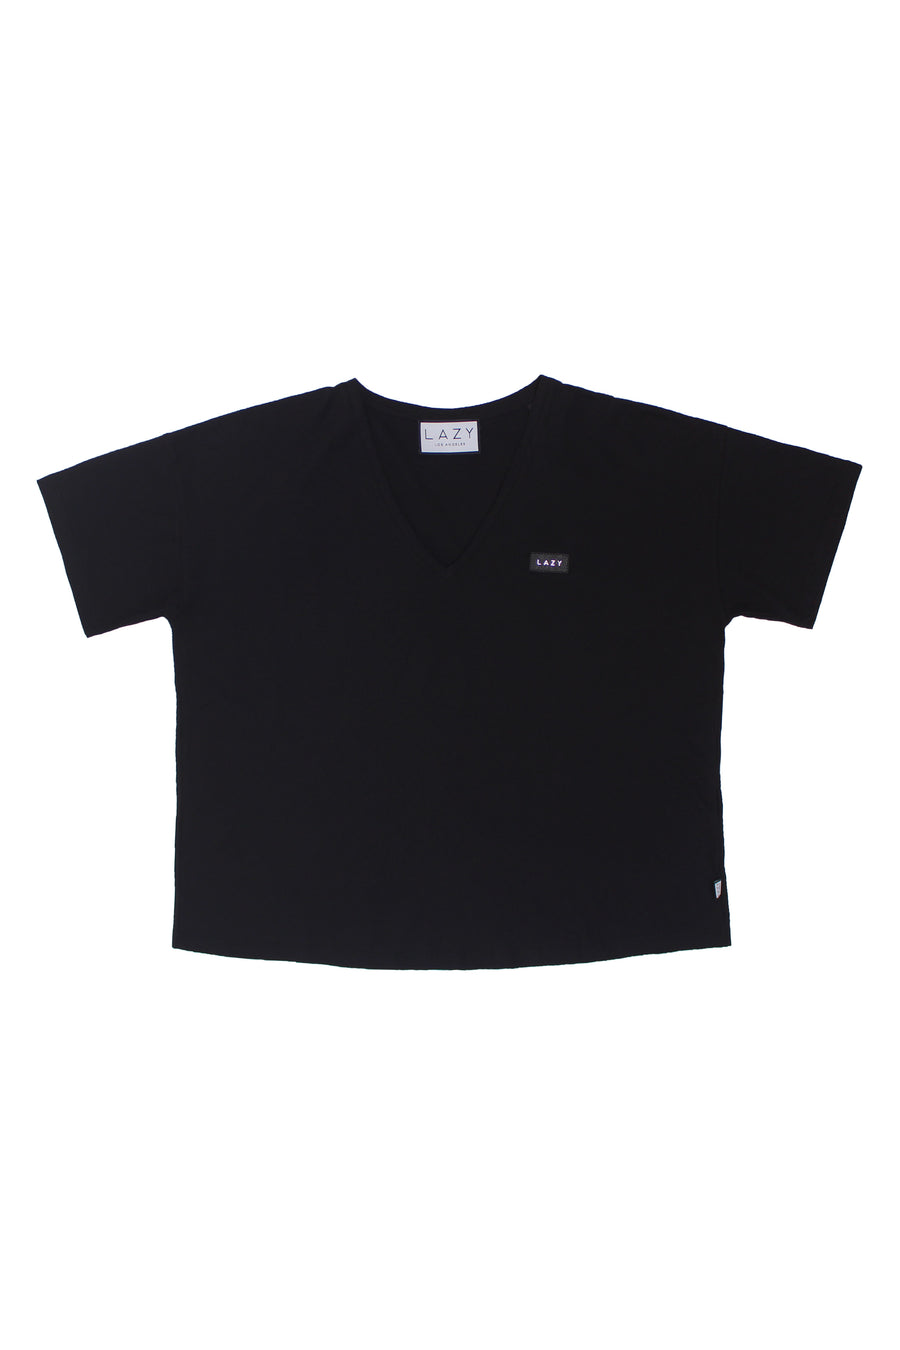 LAZY 1.0 T-Shirt Black-Tops-Christina Dienst